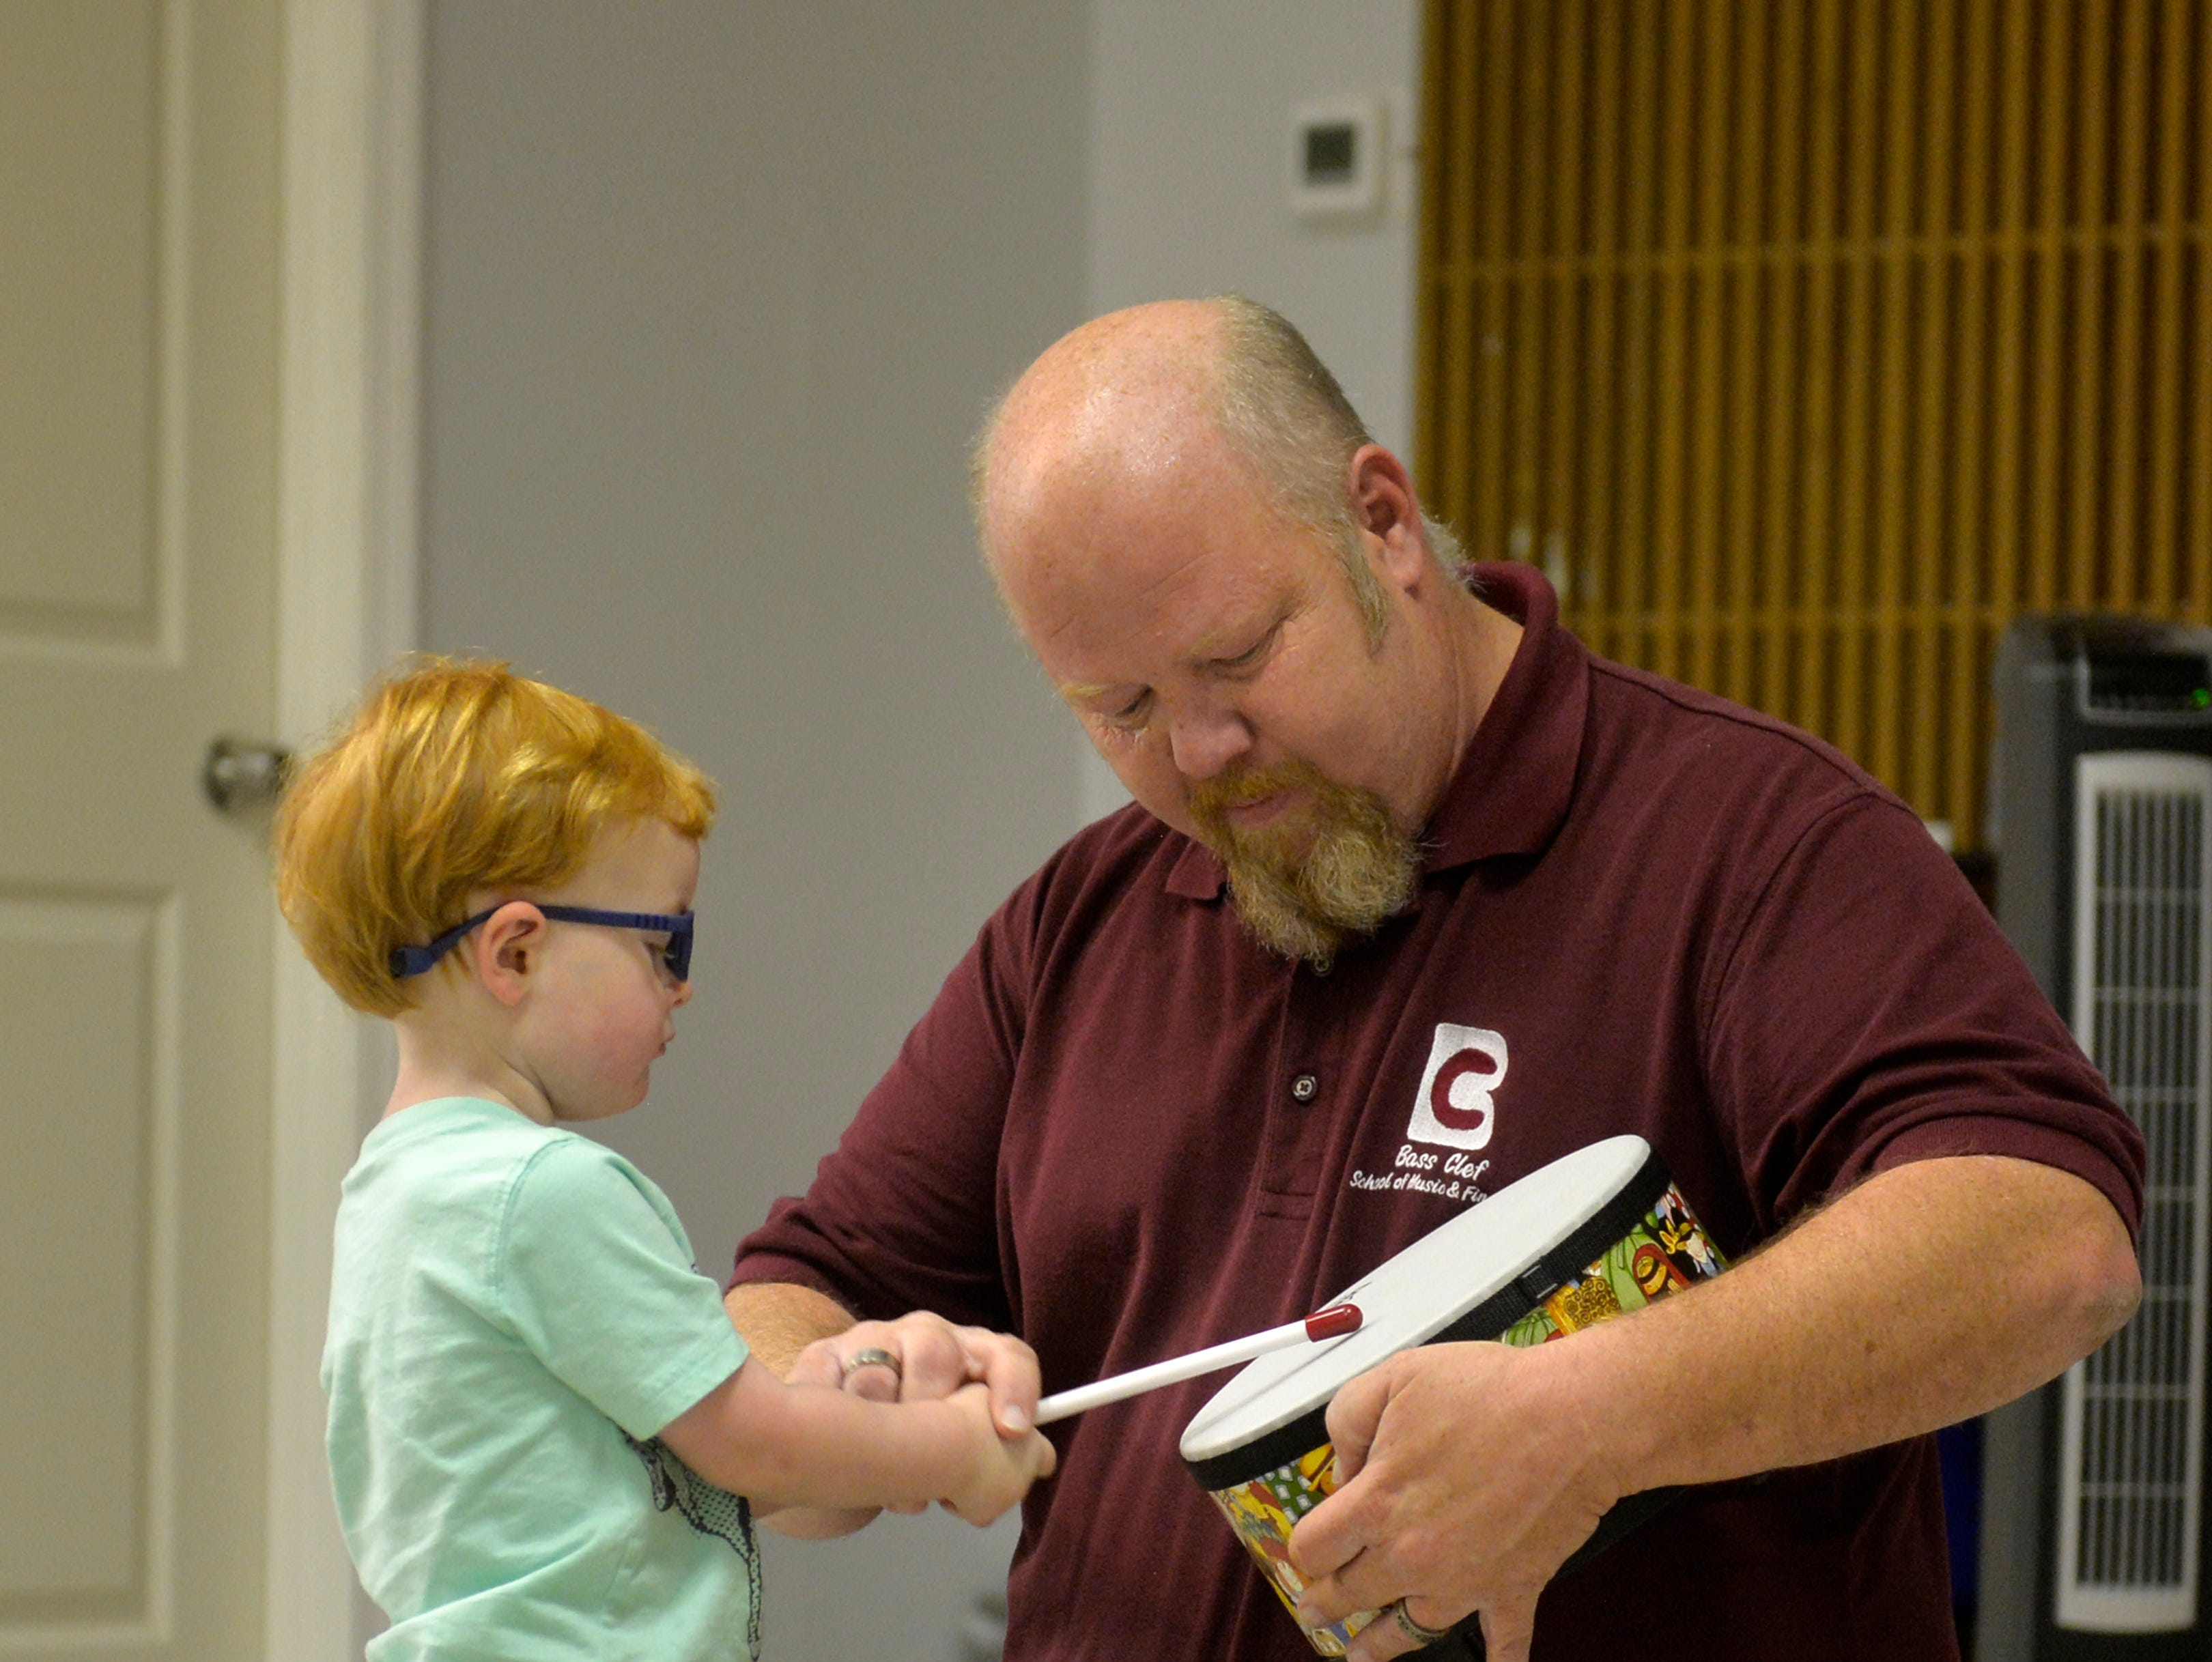 Tim Bass, owner of Bass Clef School of Music, plays a drum with Chace Lee, age 2, during a music class for toddlers and their parents, recently.